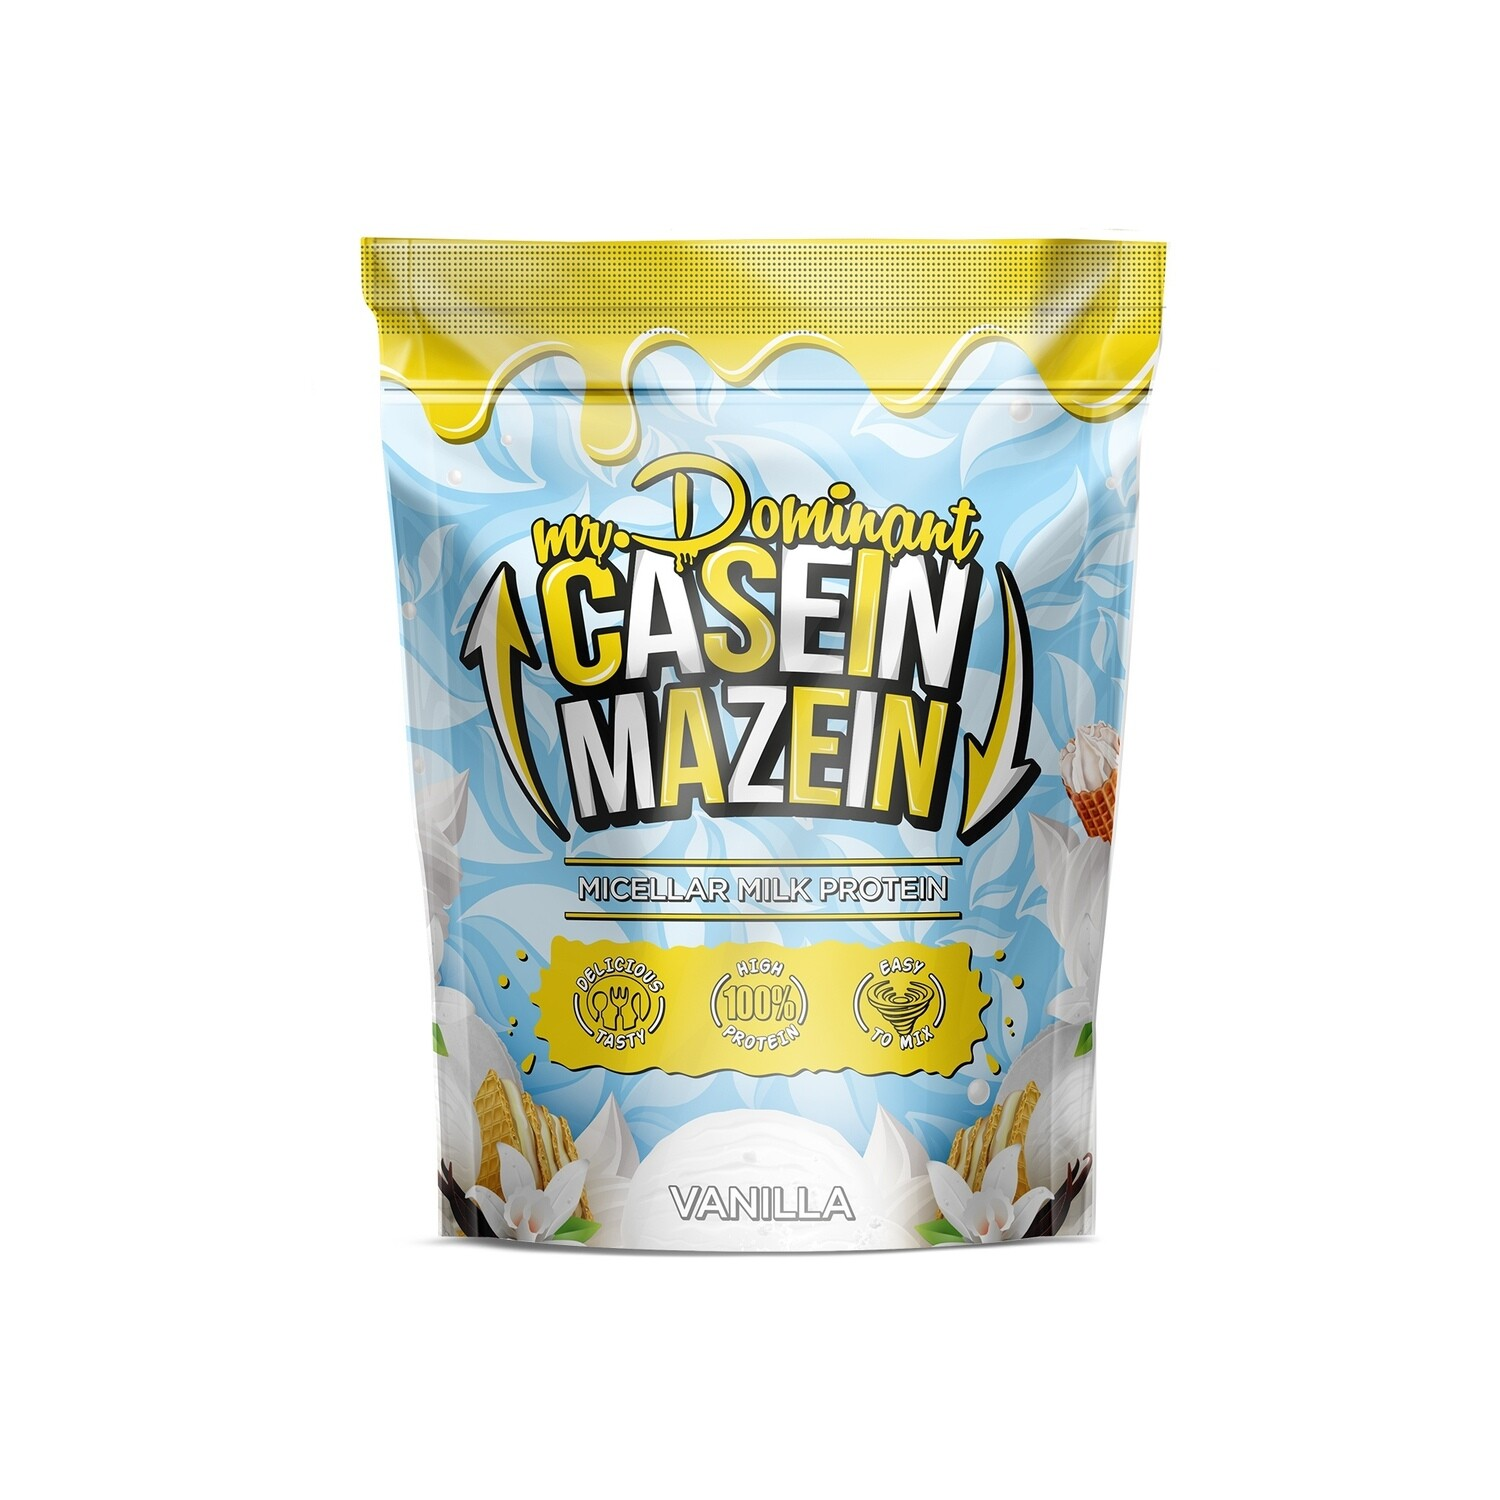 Casein Mazein Mr.Dominant